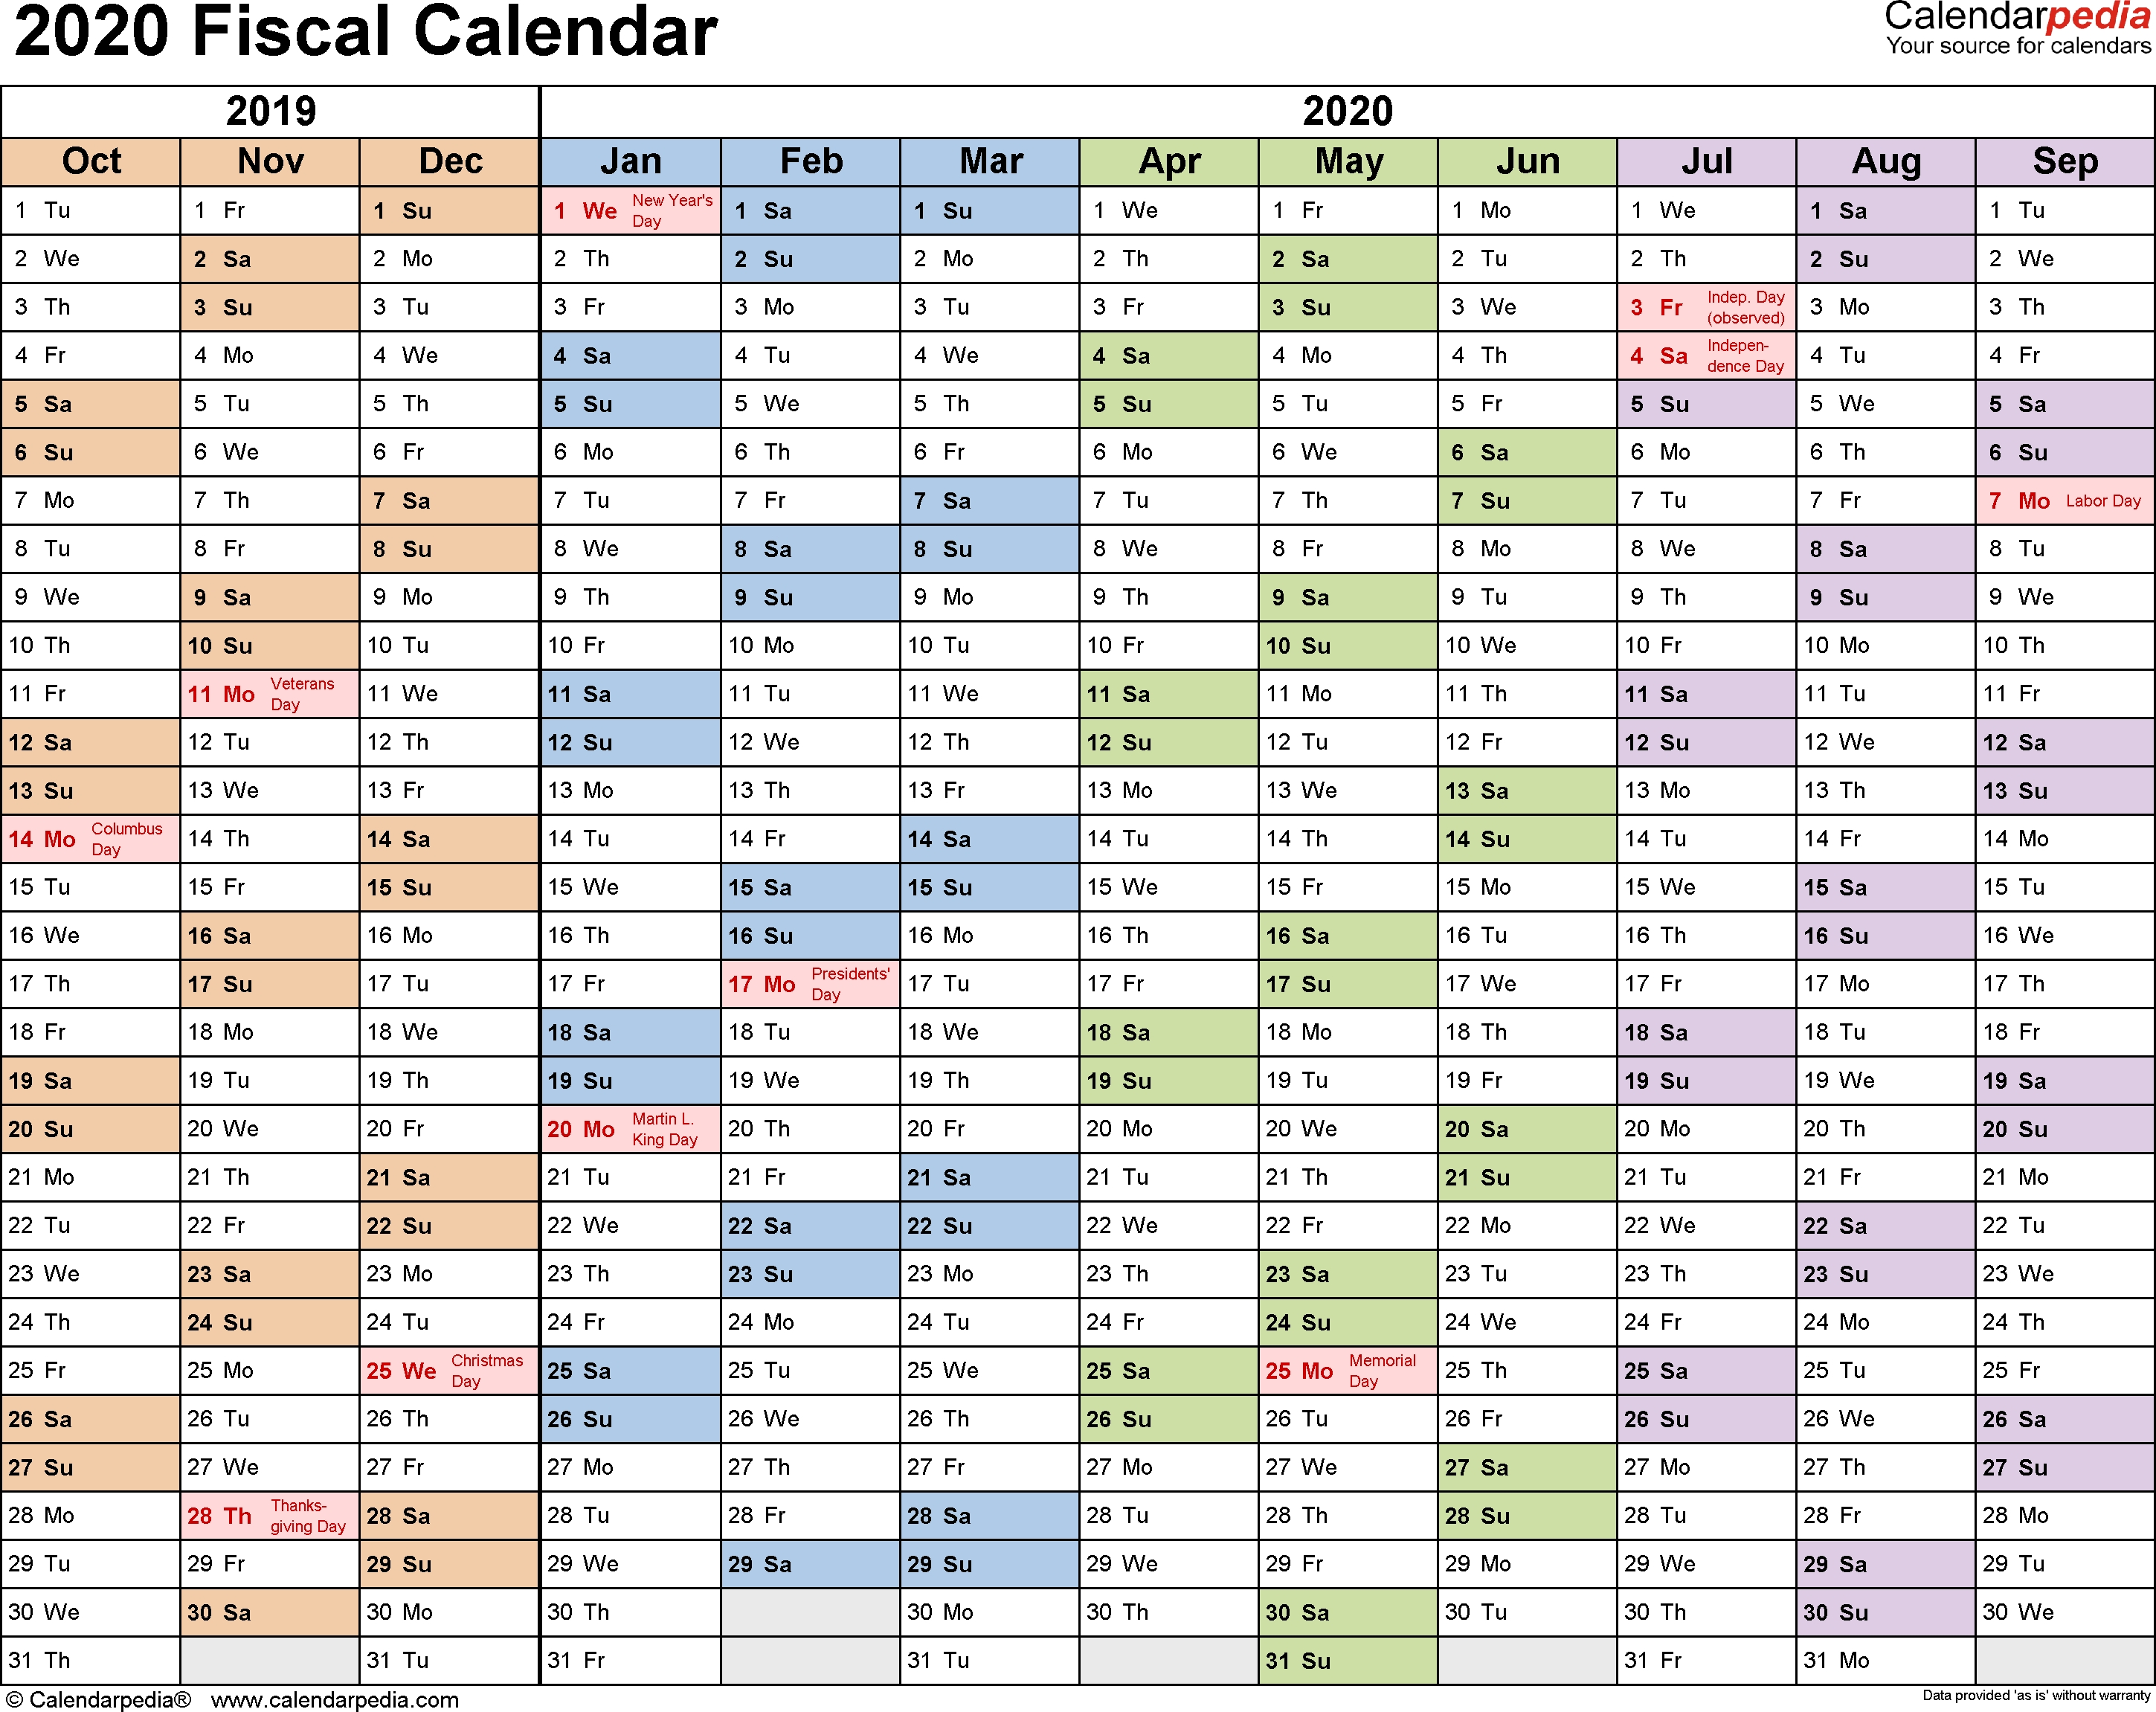 Fiscal Calendars 2020 As Free Printable Pdf Templates with Tax Year Calendar 2019 2020